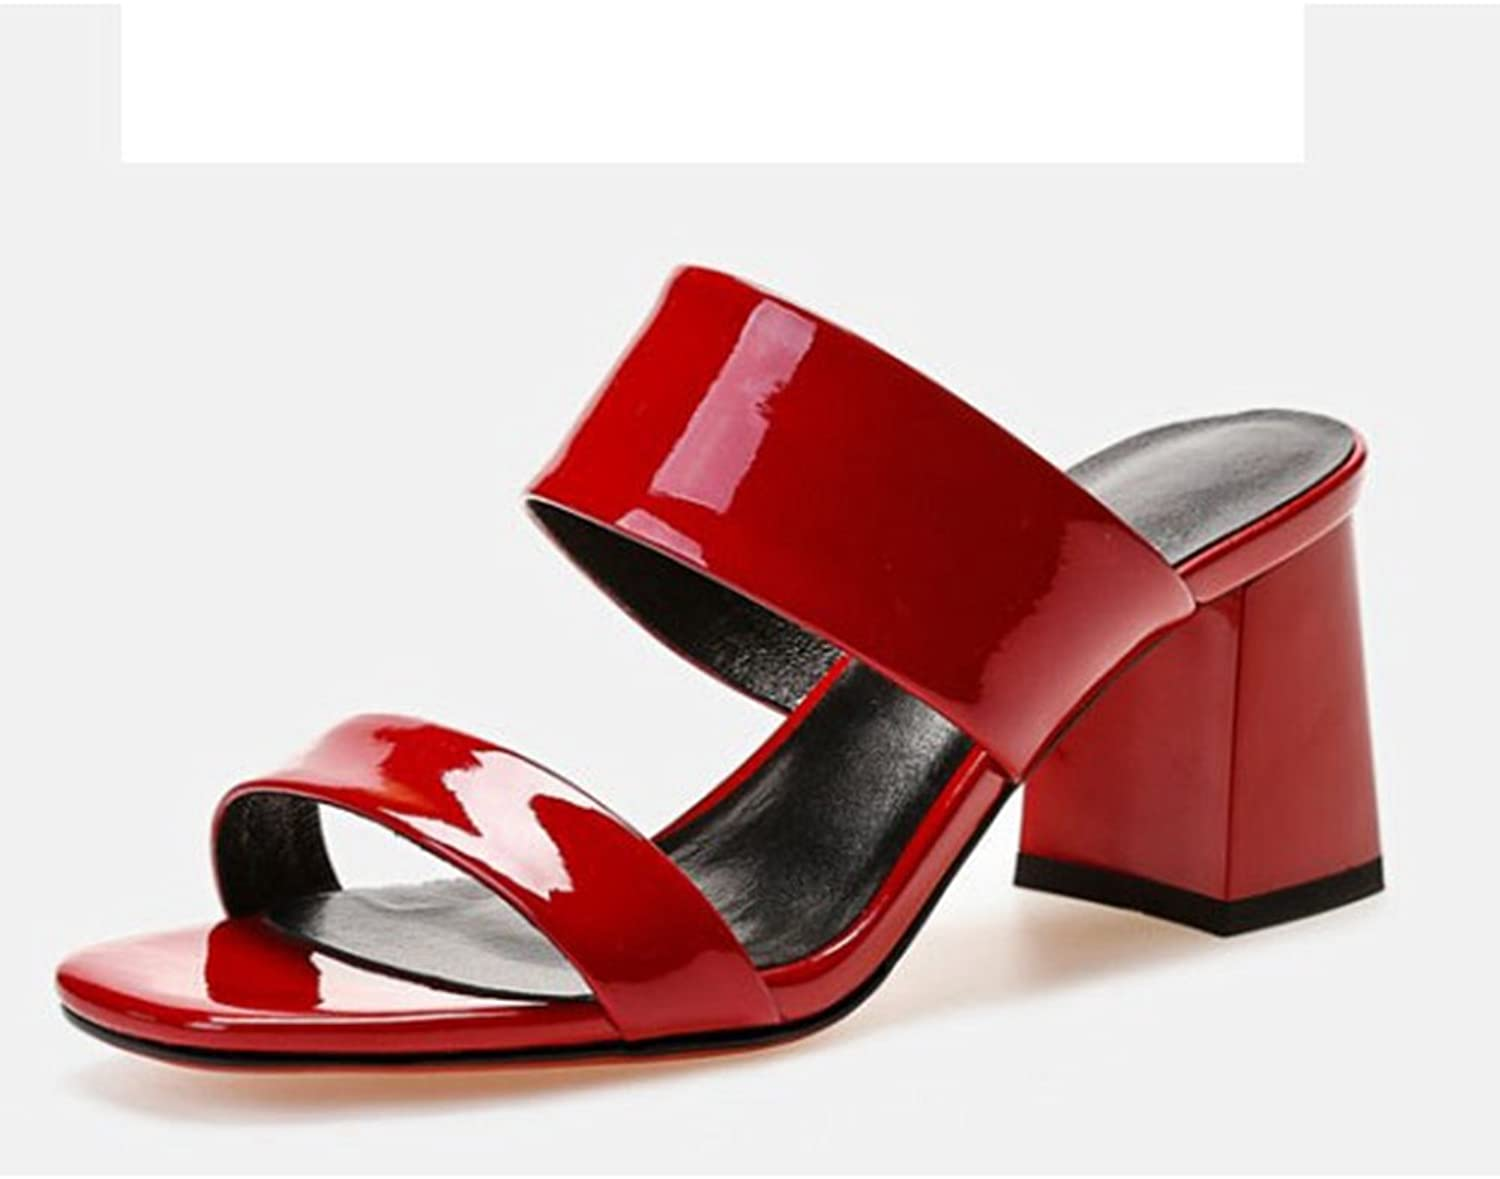 T-JULY Womens Fashion Slide Sandals High Heel Leather Slippers Open Toe Summer shoes